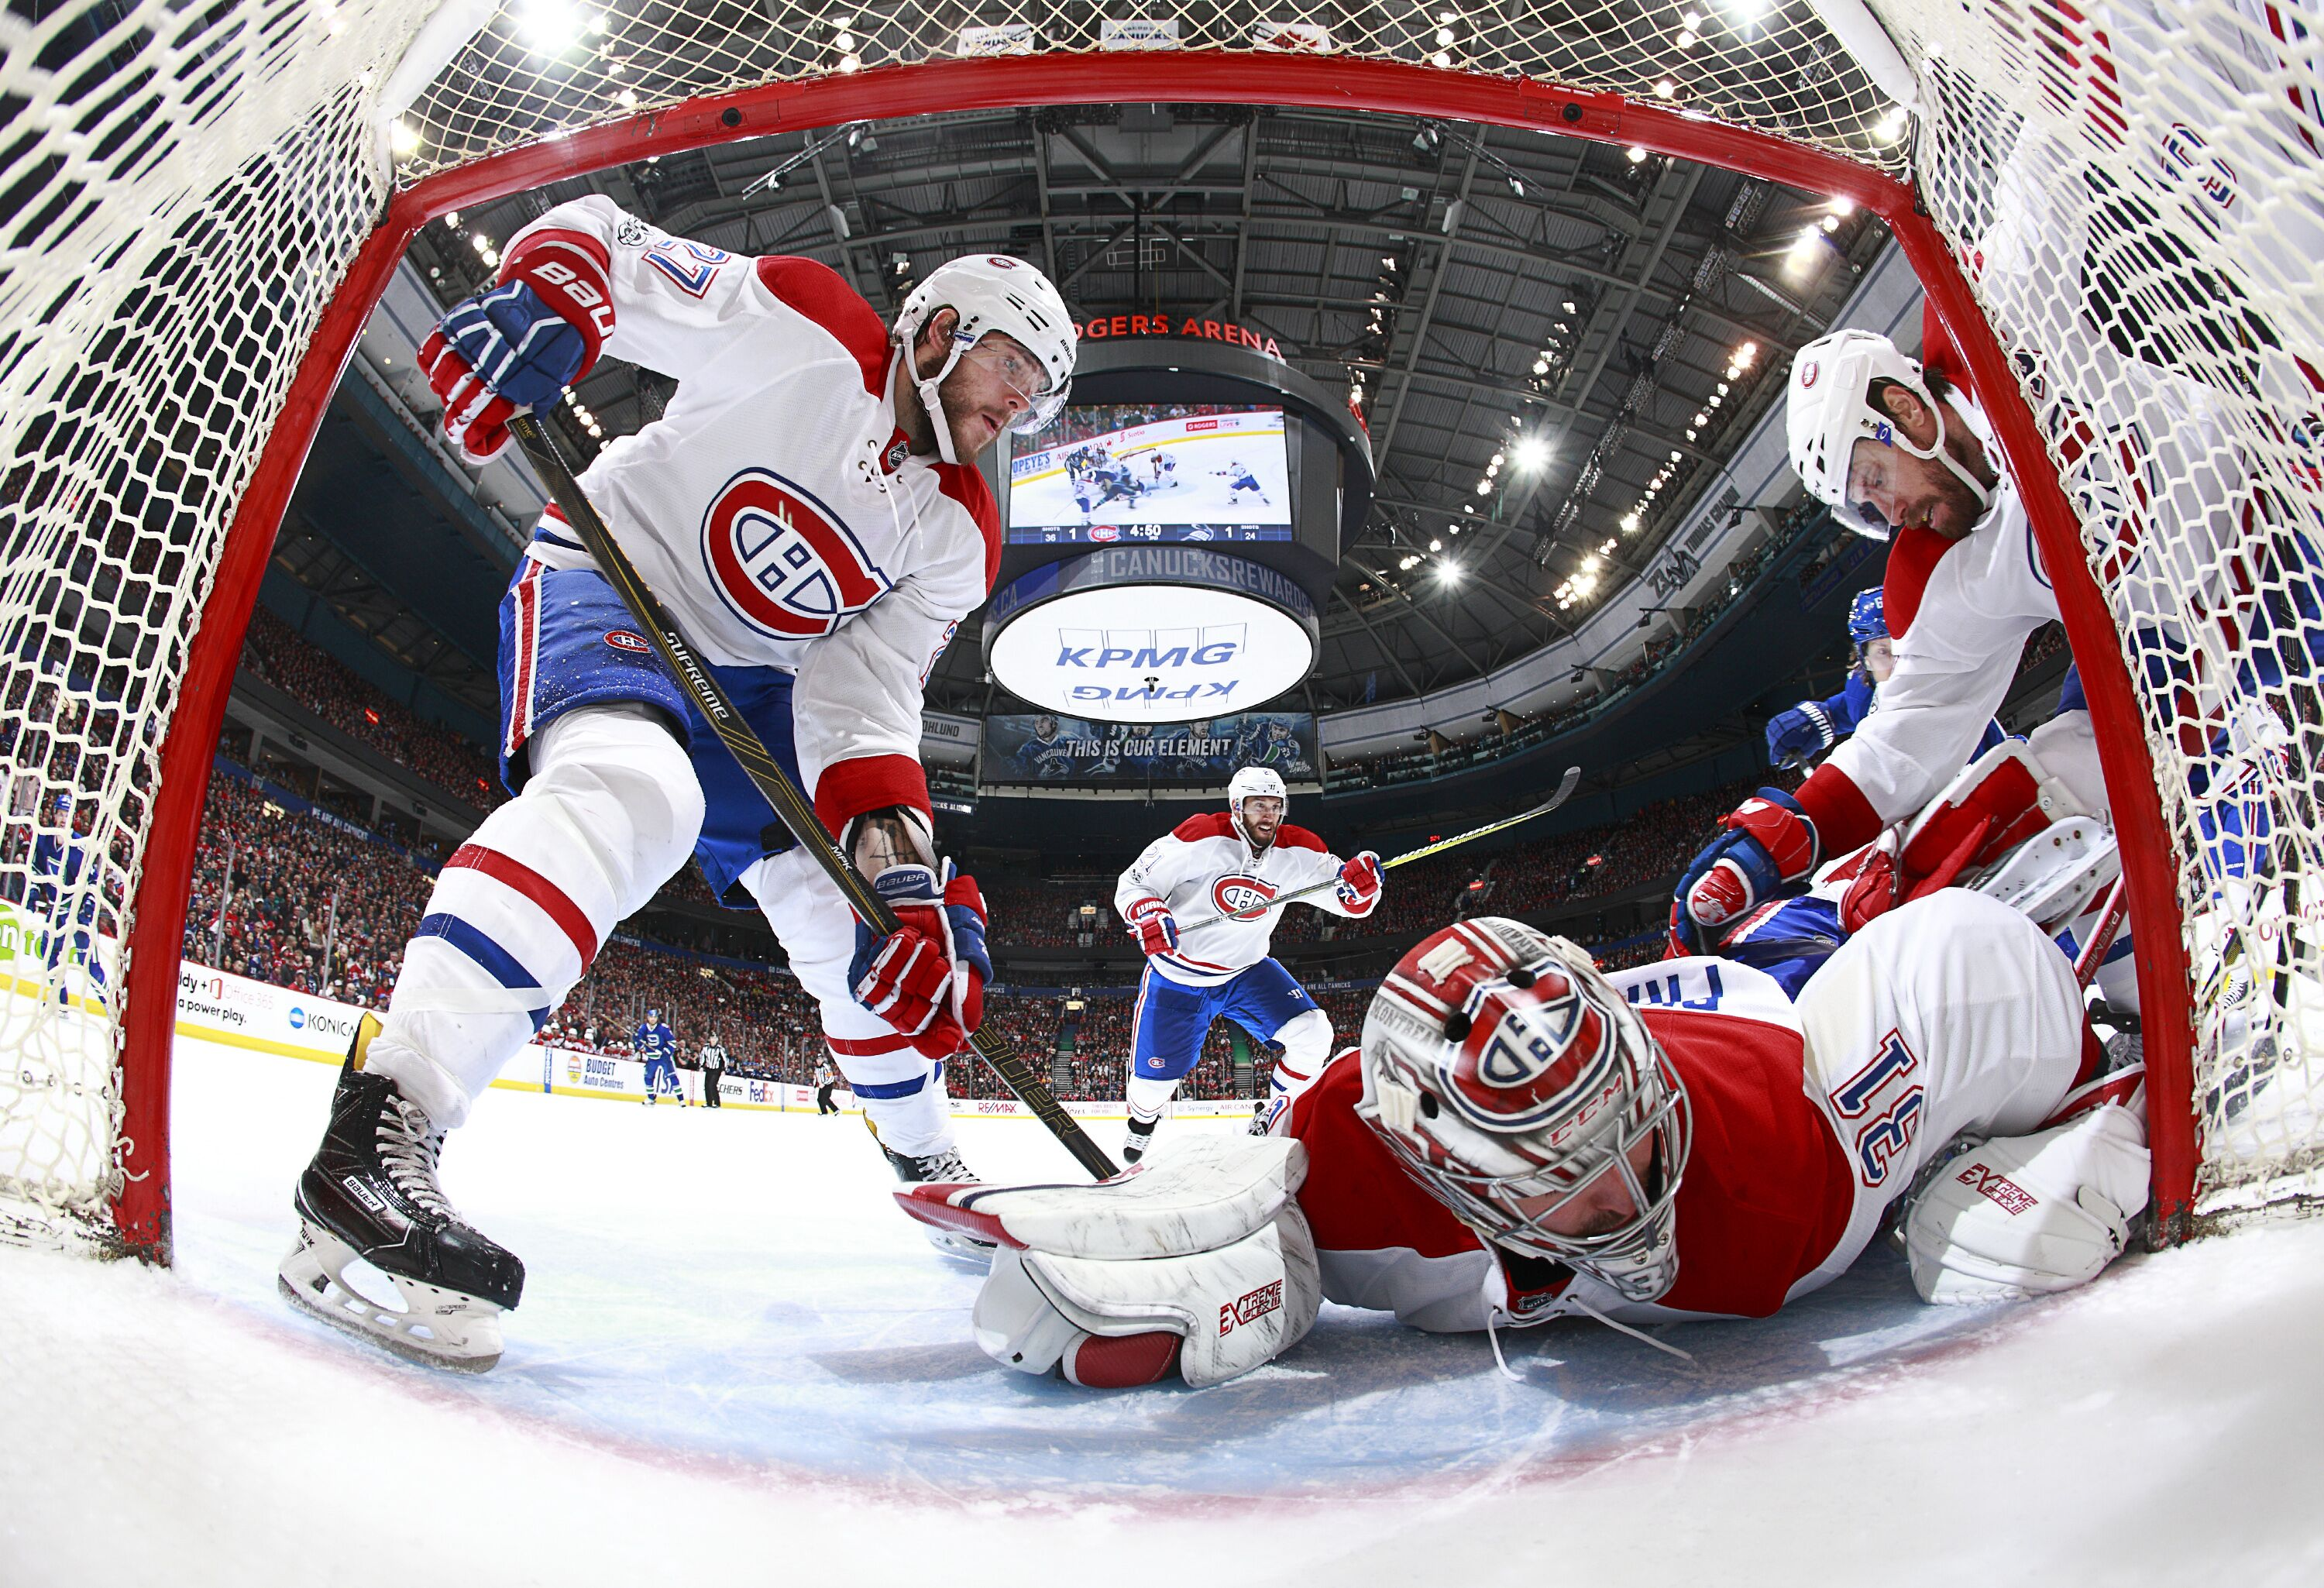 Montreal Canadiens: Saying hello to adversity on the road